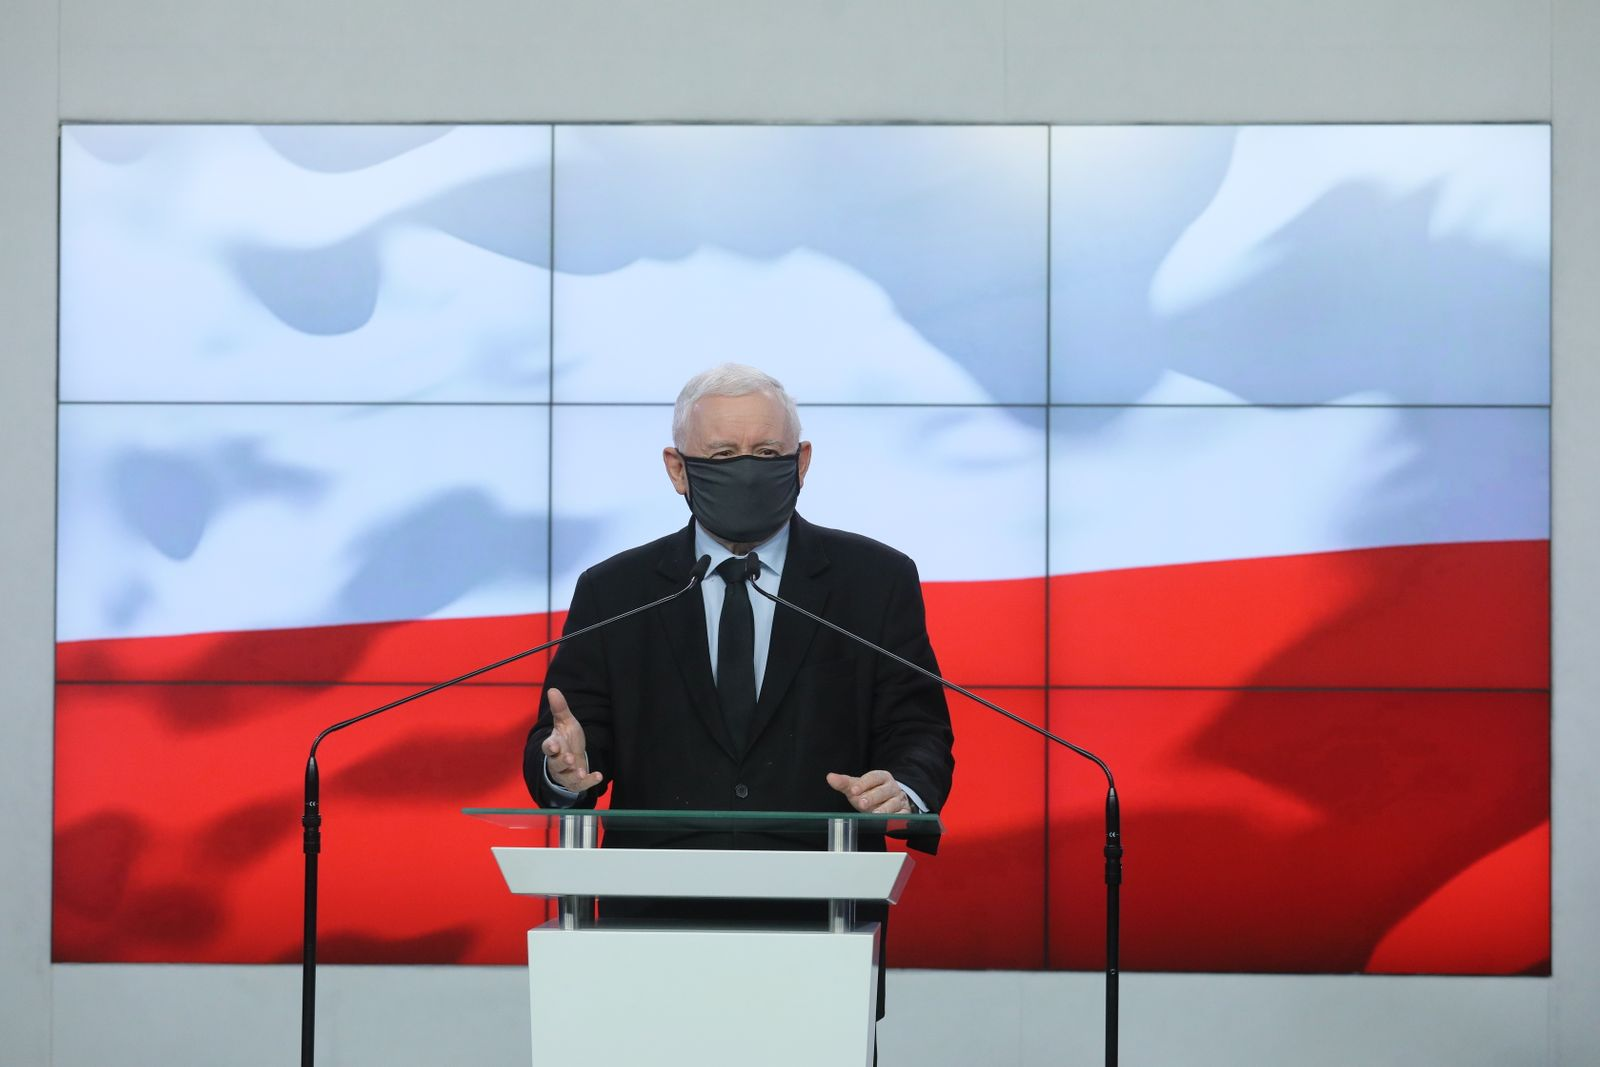 Leader of the Polish Law and Justice rulling party Jaroslaw Kaczynski press conference